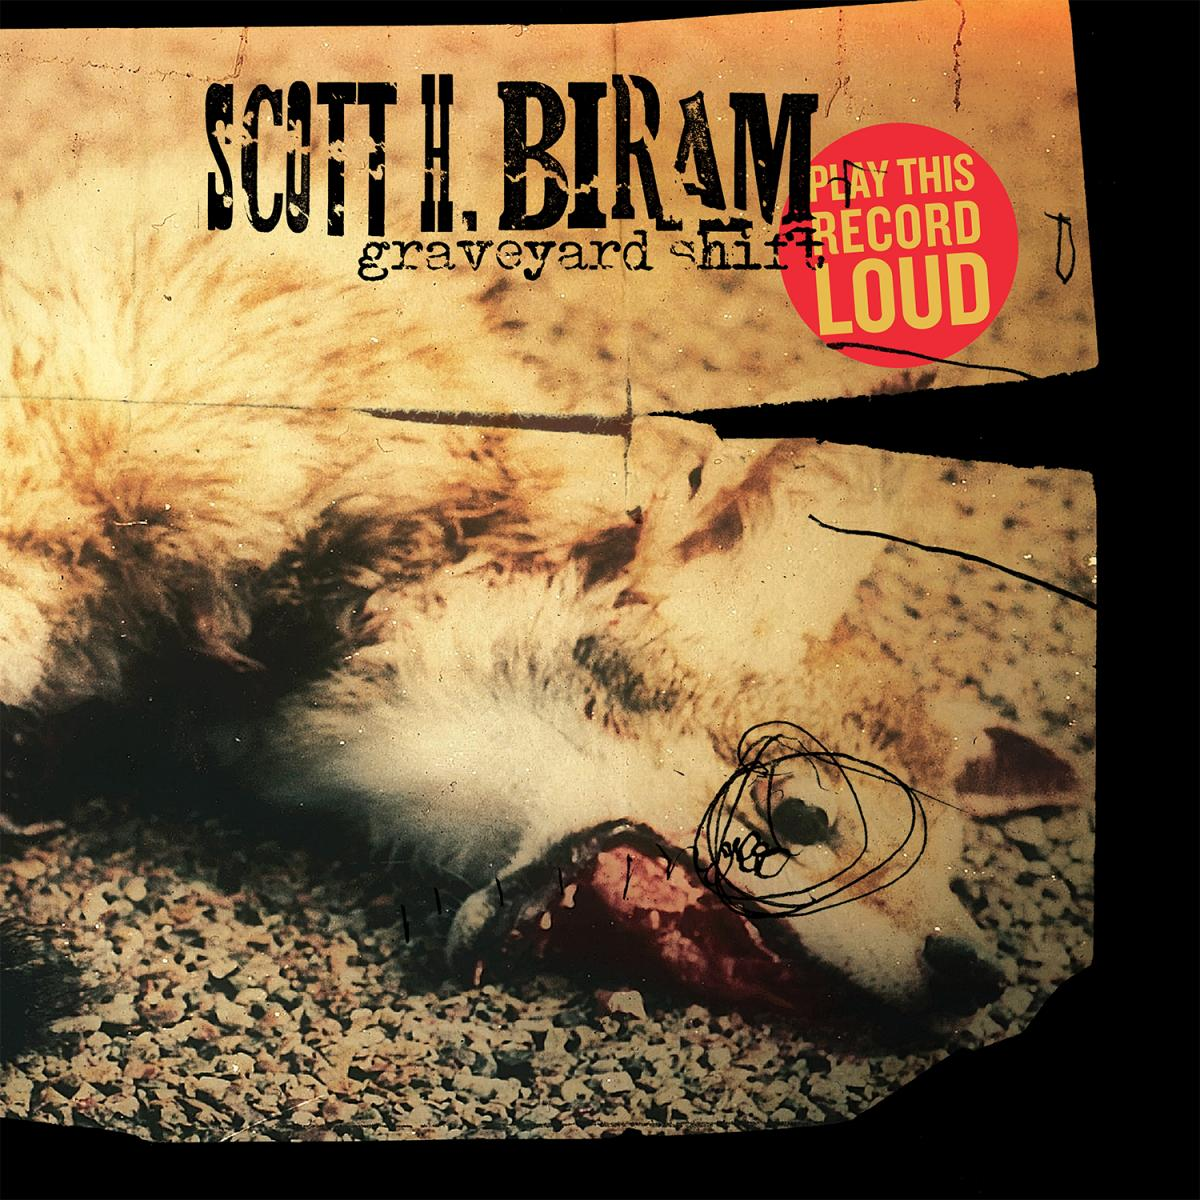 Scott H Biram Graveyard Shift Deluxe vinyl LP